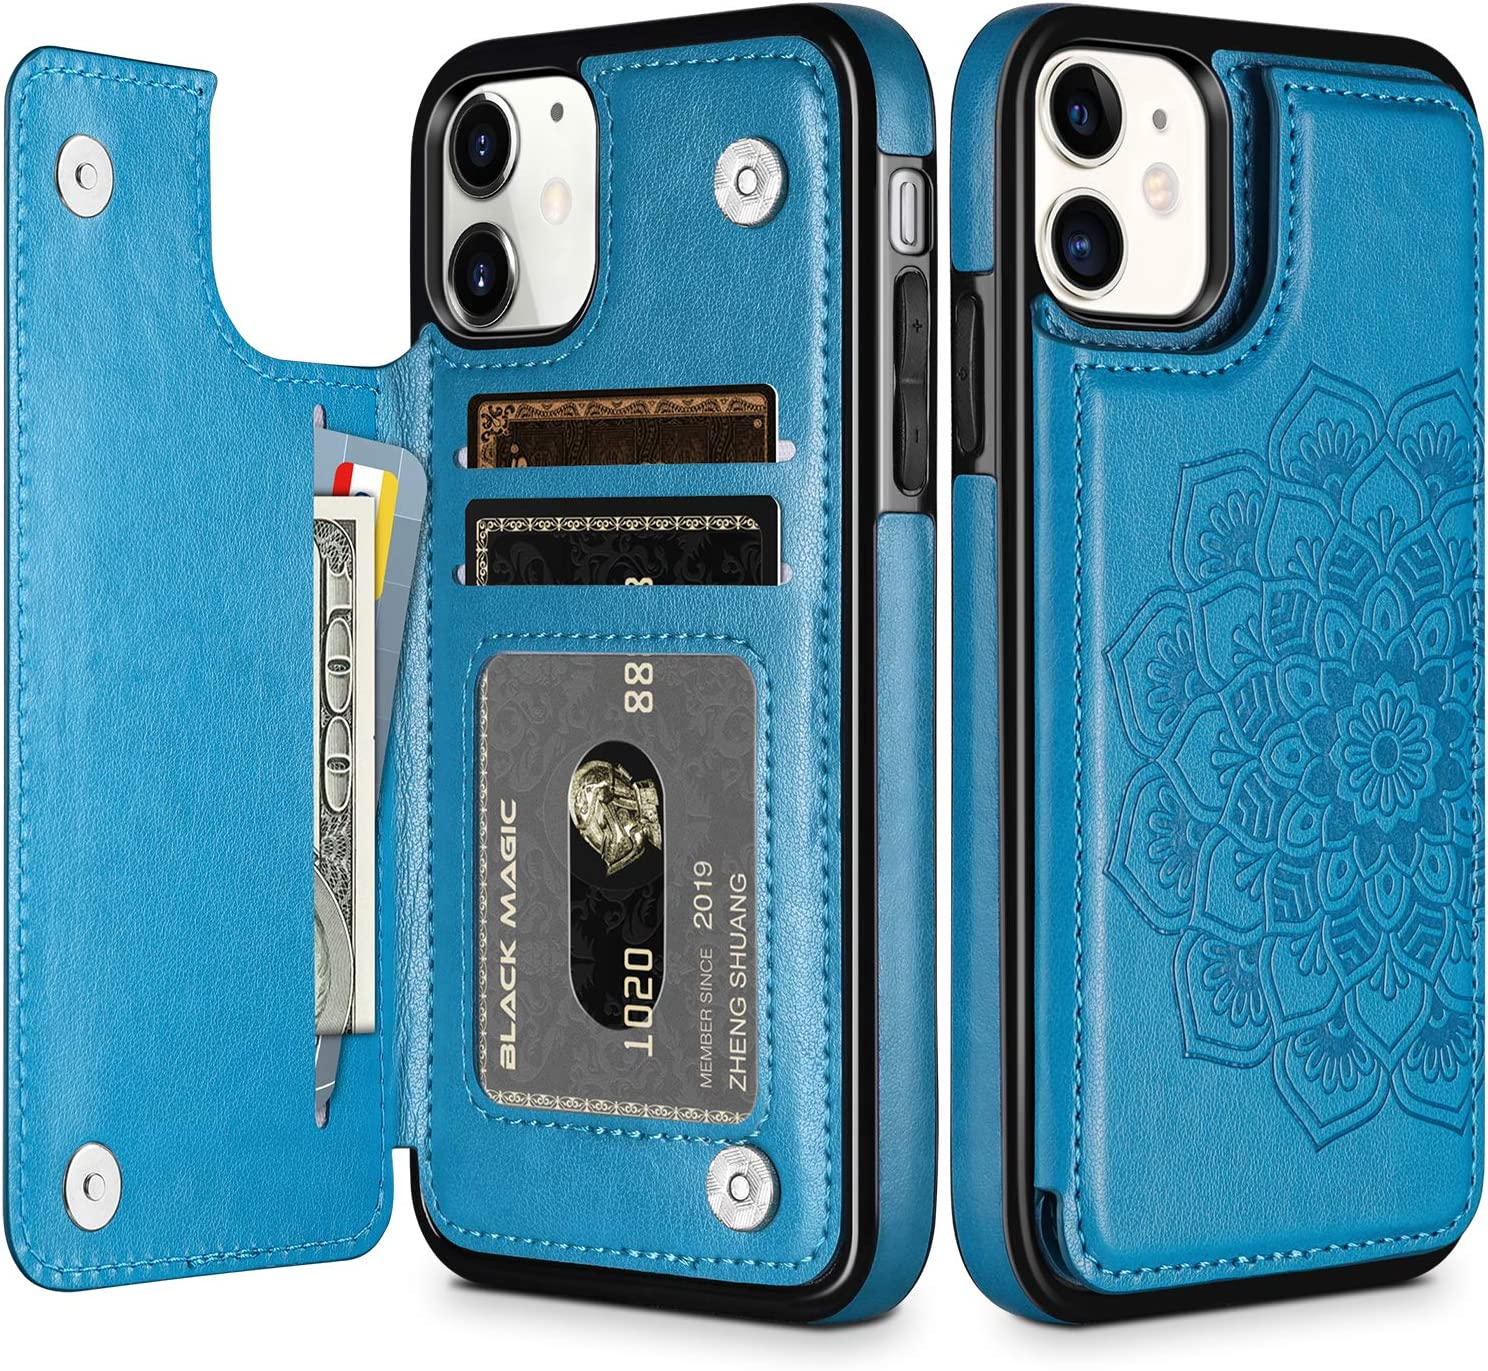 HianDier Wallet Case for iPhone 11 Slim Protective Case with Credit Card Slot Holder Flip Folio Soft PU Leather Magnetic Closure Cover for 2019 iPhone 11 iPhone XI, Mandala Blue